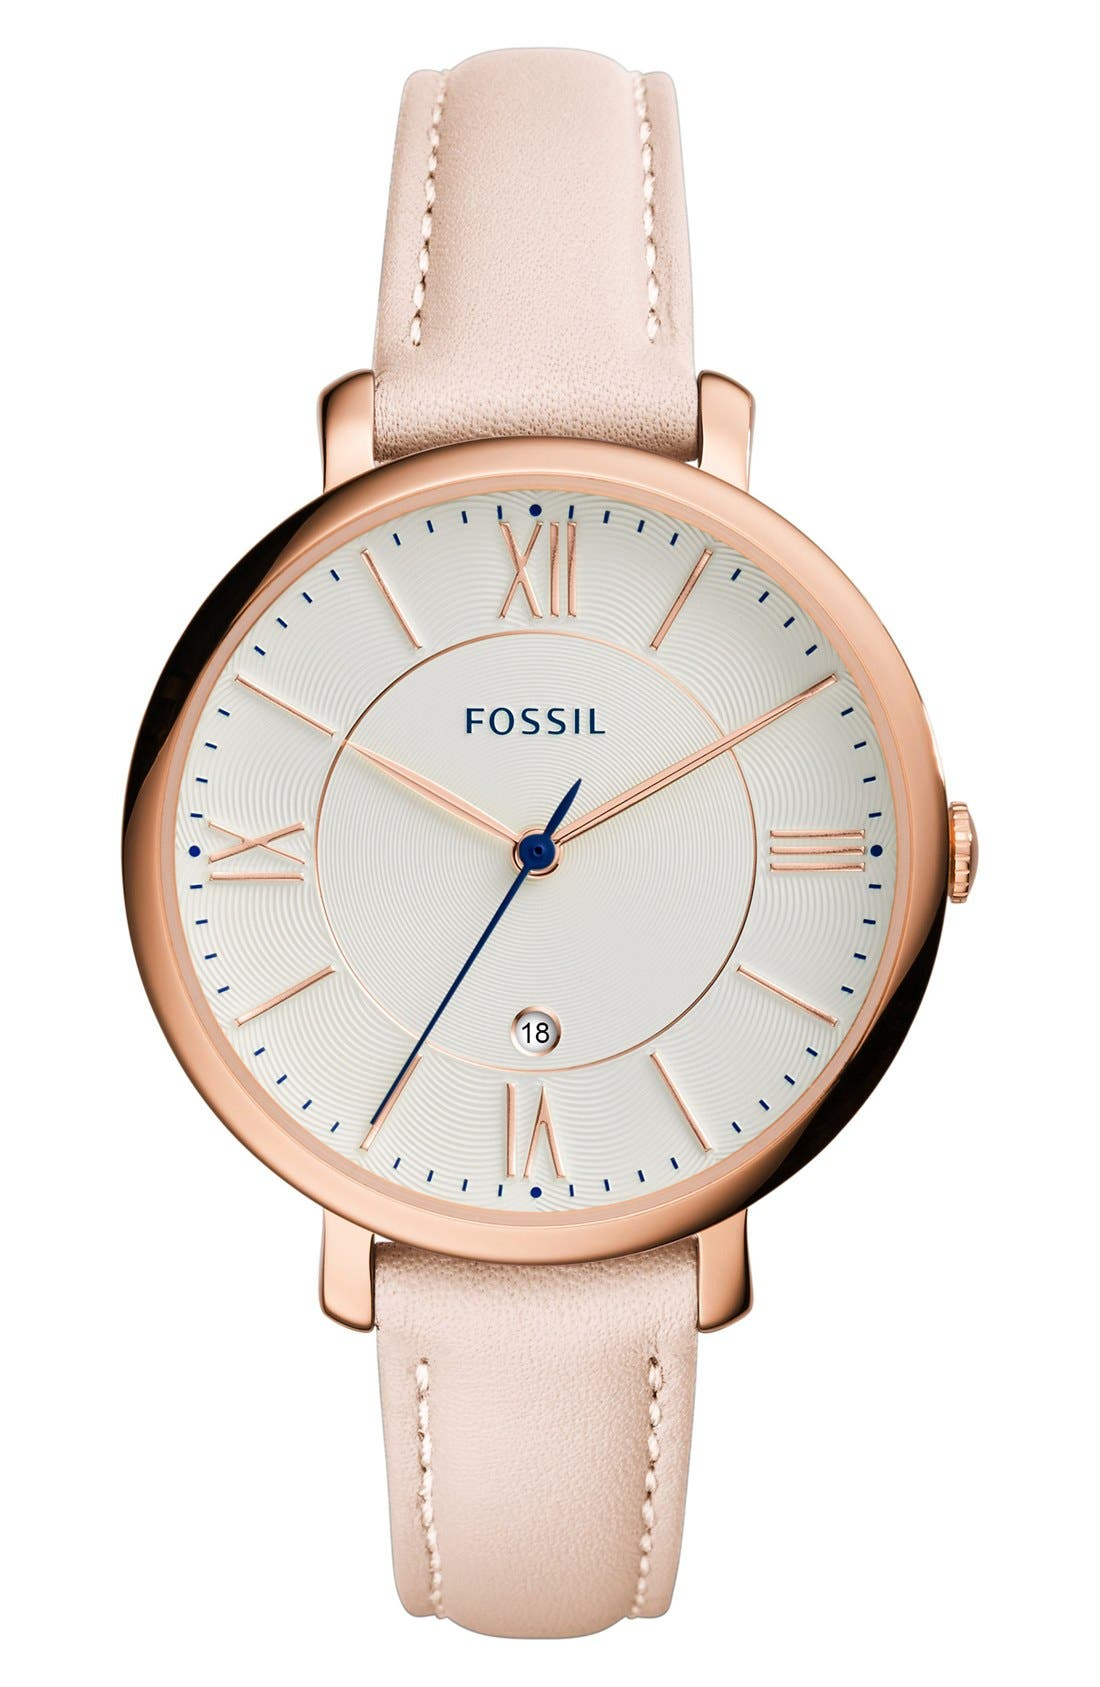 FOSSIL, 'Jacqueline' Leather Strap Watch, 36mm, Main thumbnail 1, color, BLUSH/ WHITE